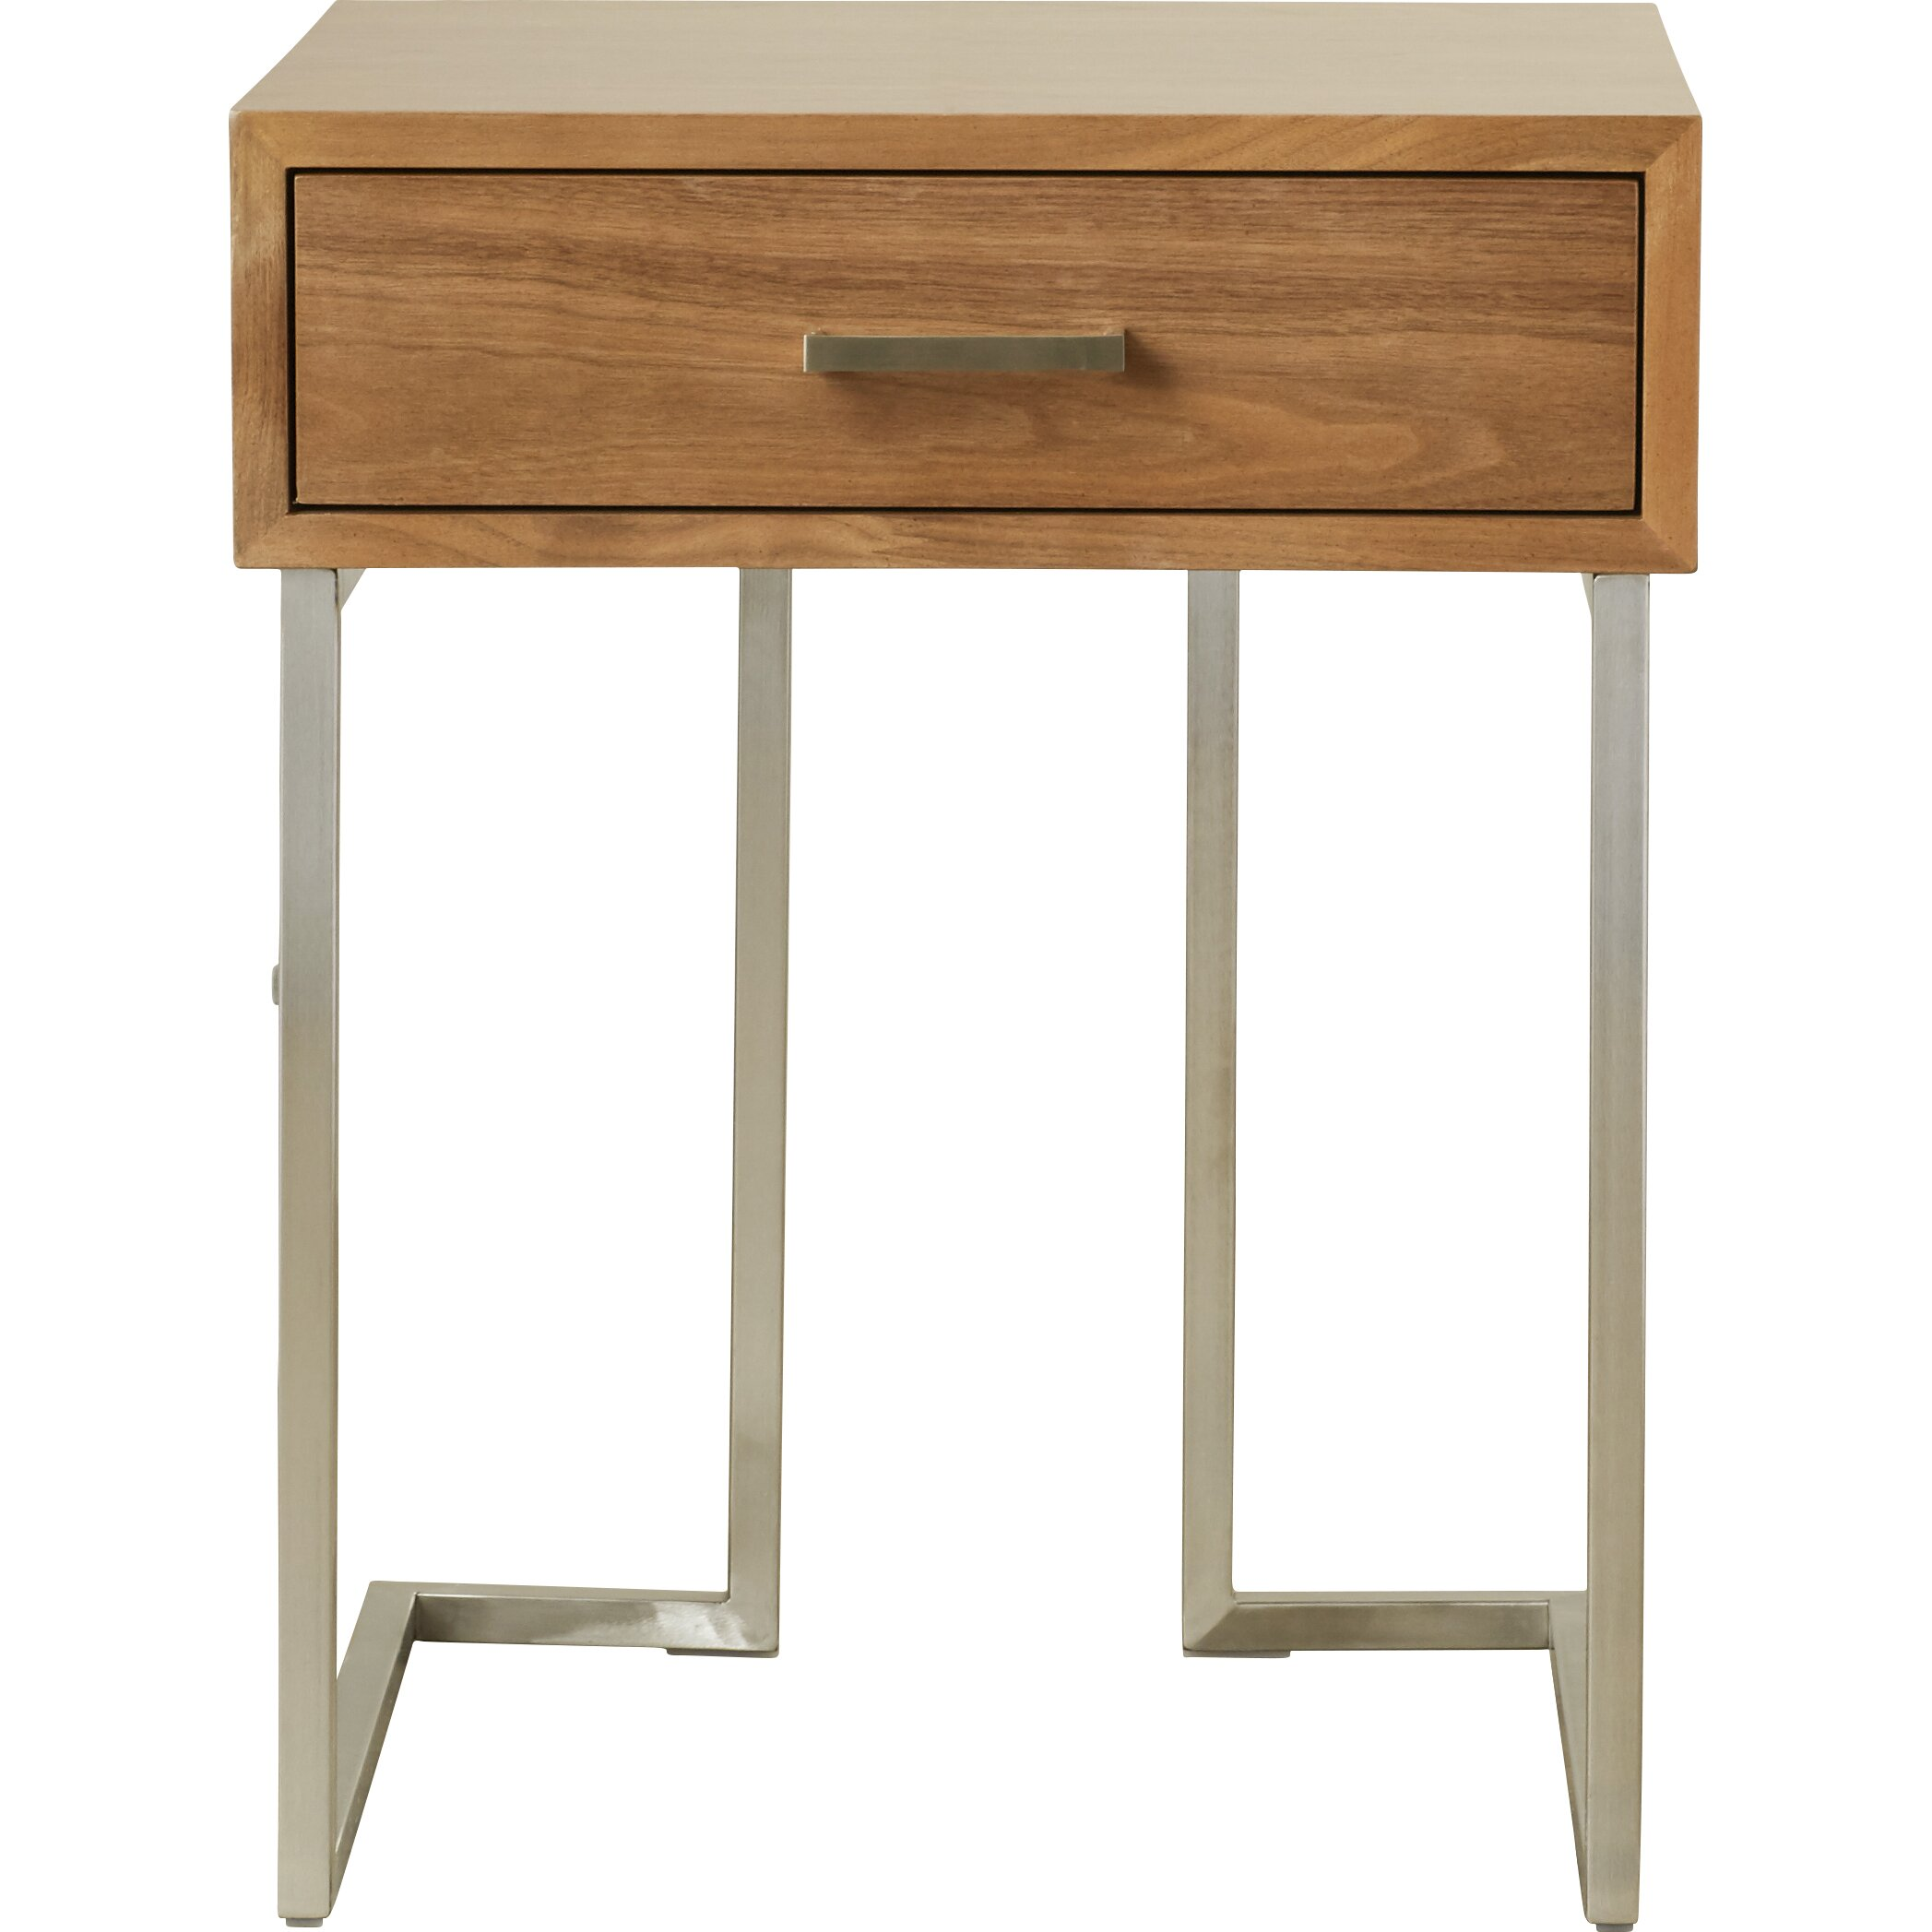 Mercury row end table reviews wayfair for Html table row